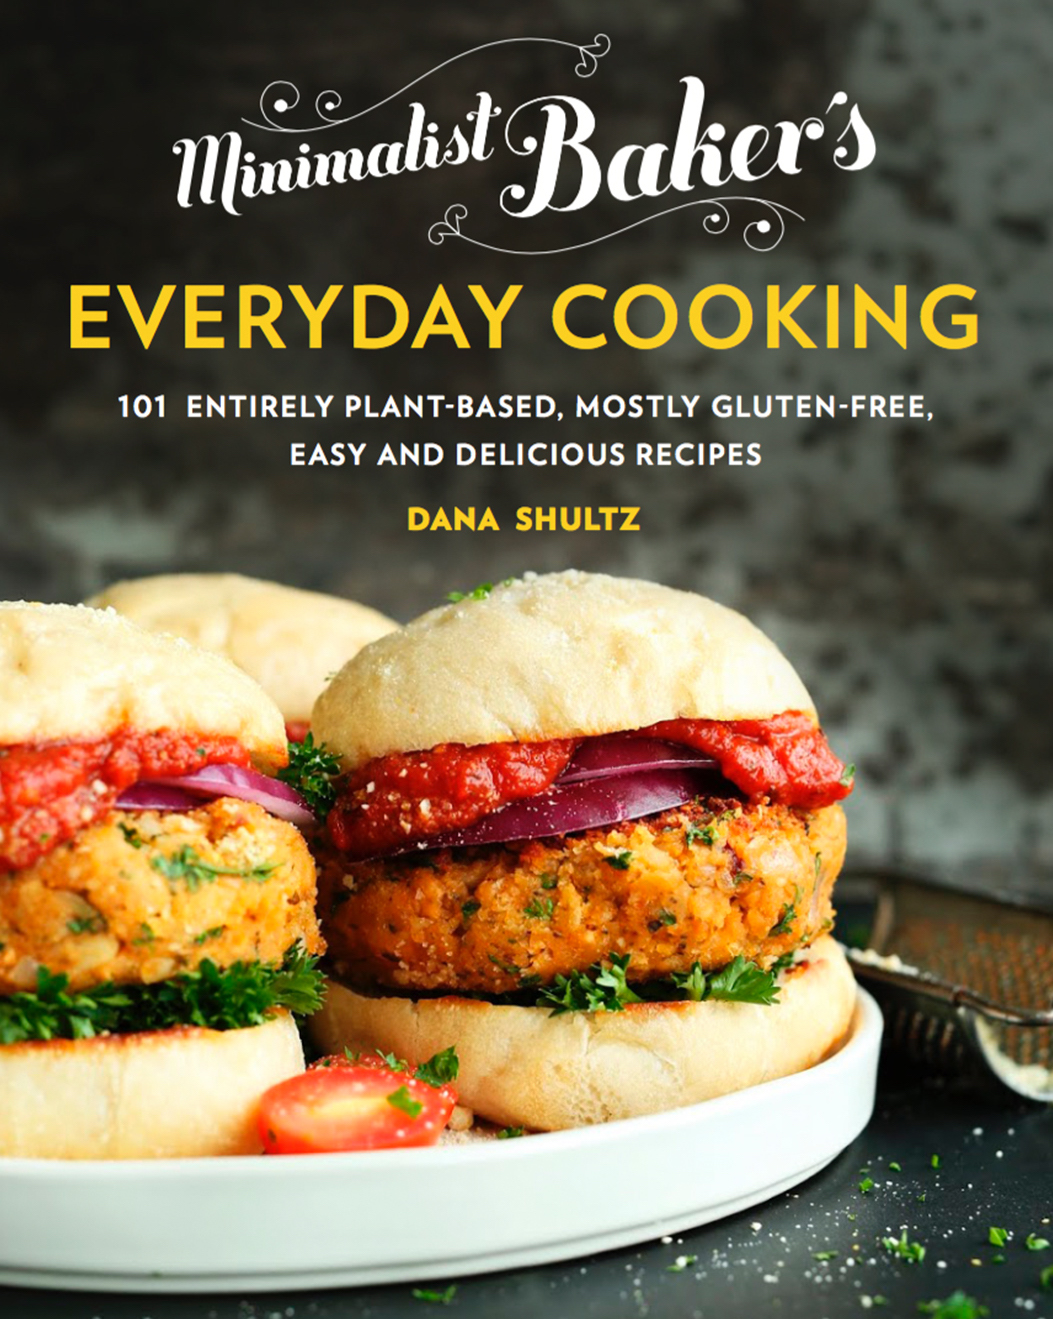 Vegan crunk the minimalist baker has a cookbook and its awesome i think we can all agree that when it comes to vegan recipe blogs minimalist baker is tops thats the blog i send new vegans or the veg curious to when forumfinder Gallery